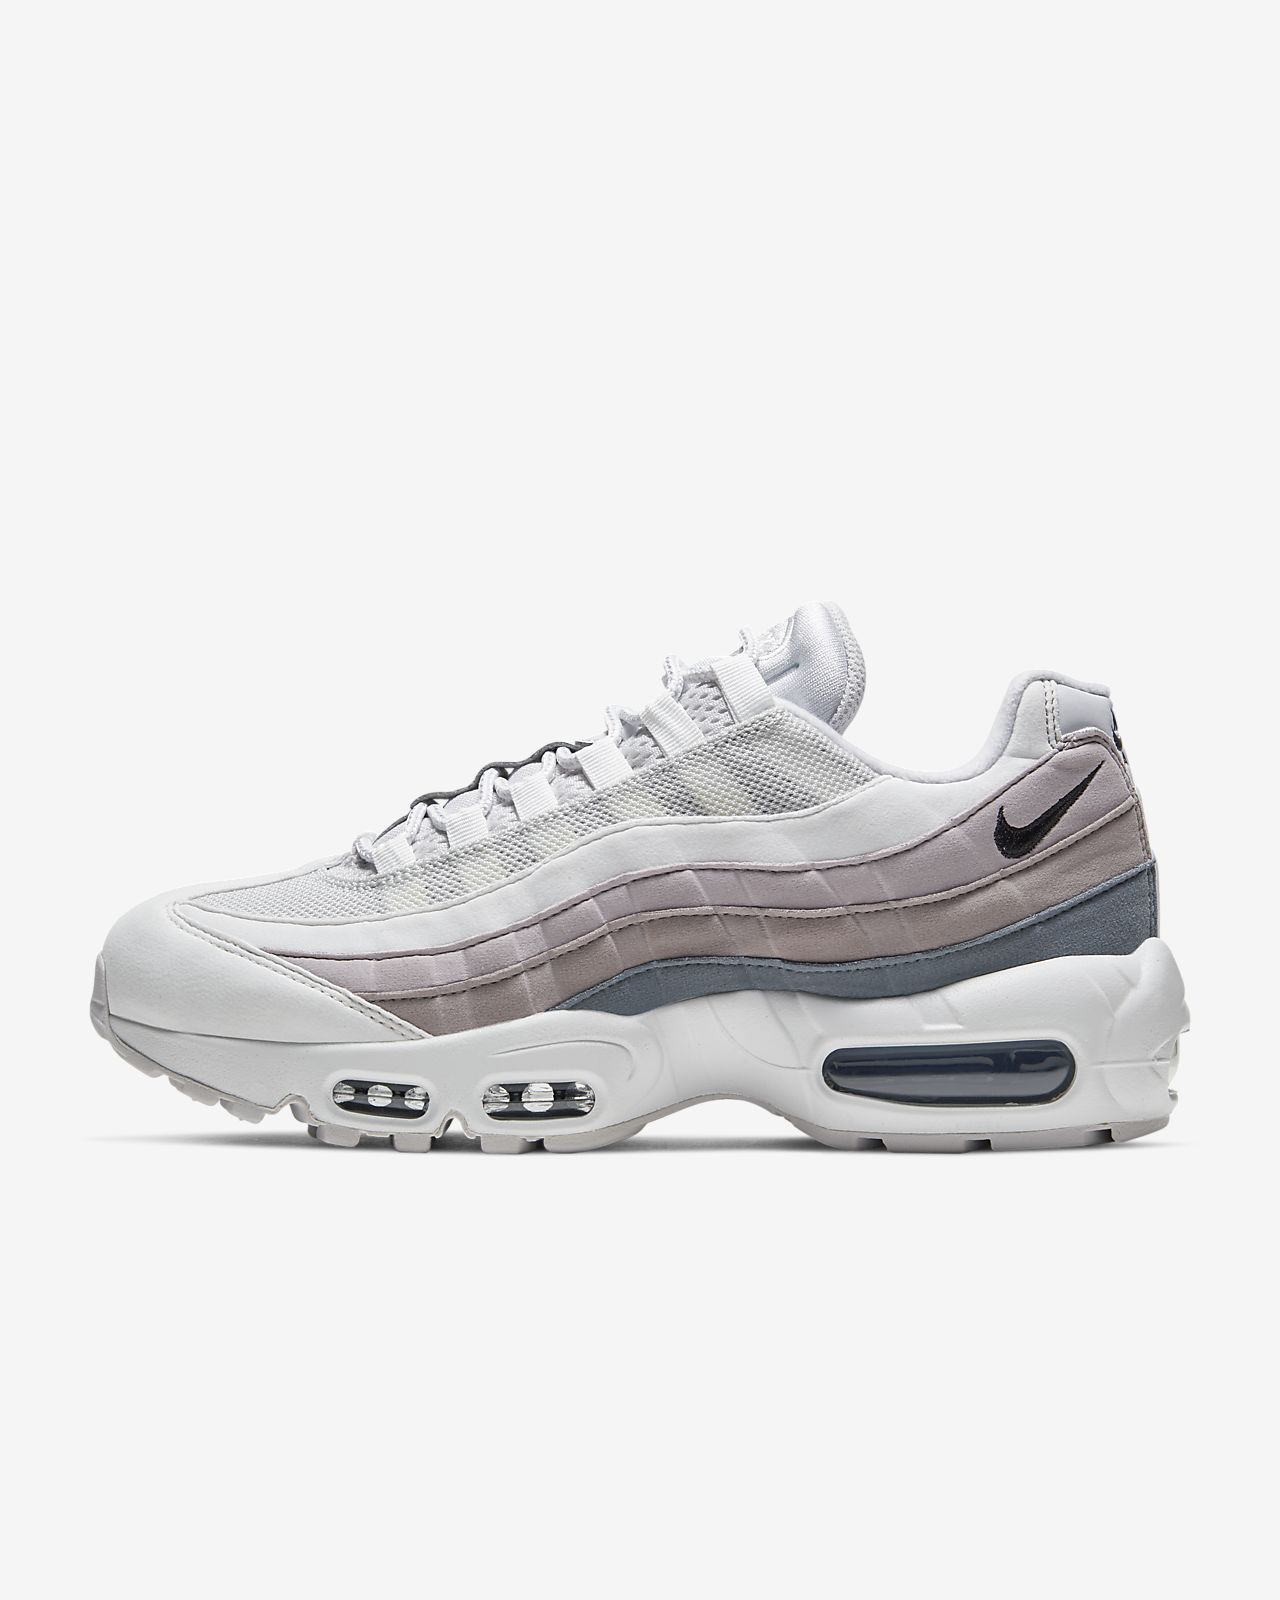 official photos 08f65 68142 ... Nike Air Max 95 Women s Shoe